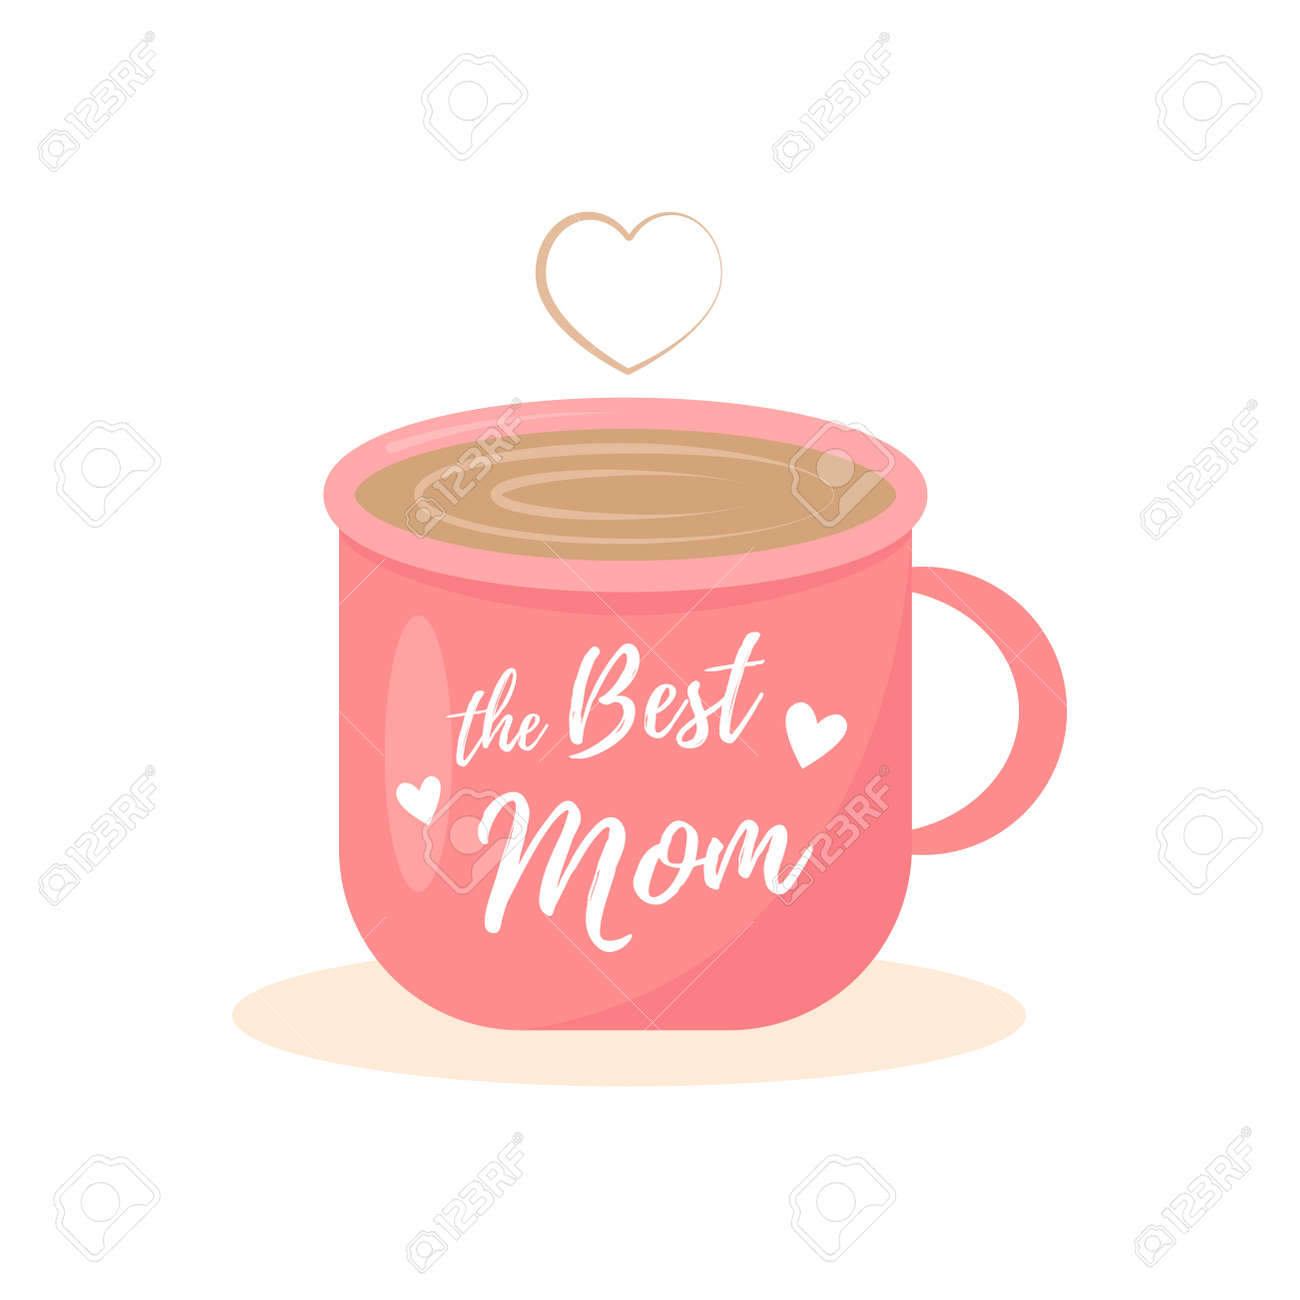 The Best Mom with cup illustration - 165908921